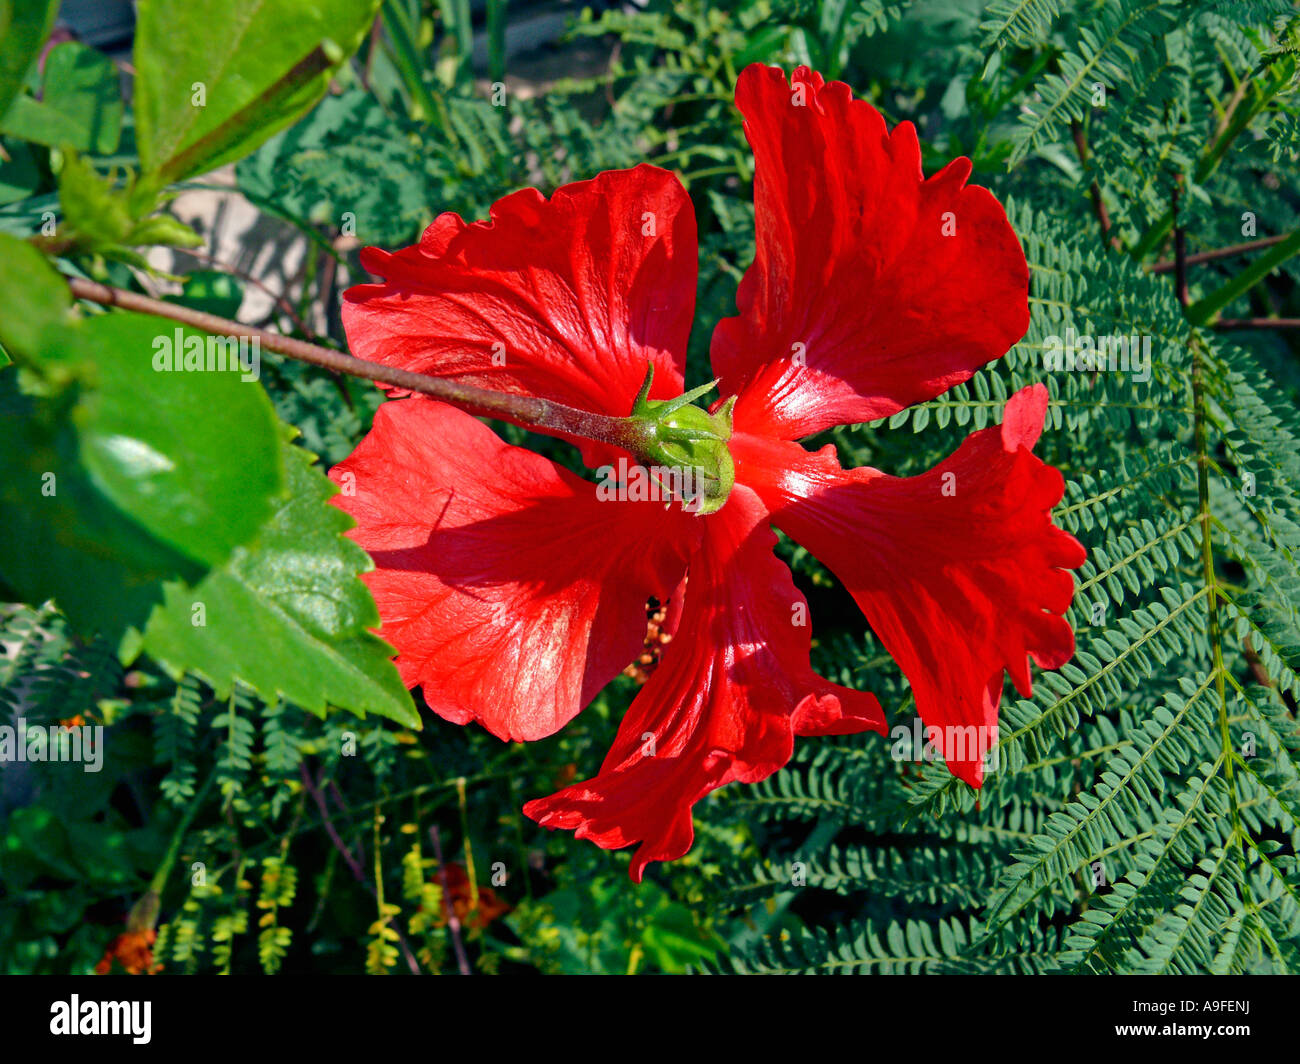 Red Hibiscus Rosa Sinensis Flower Medicinal Plant Stock Photo